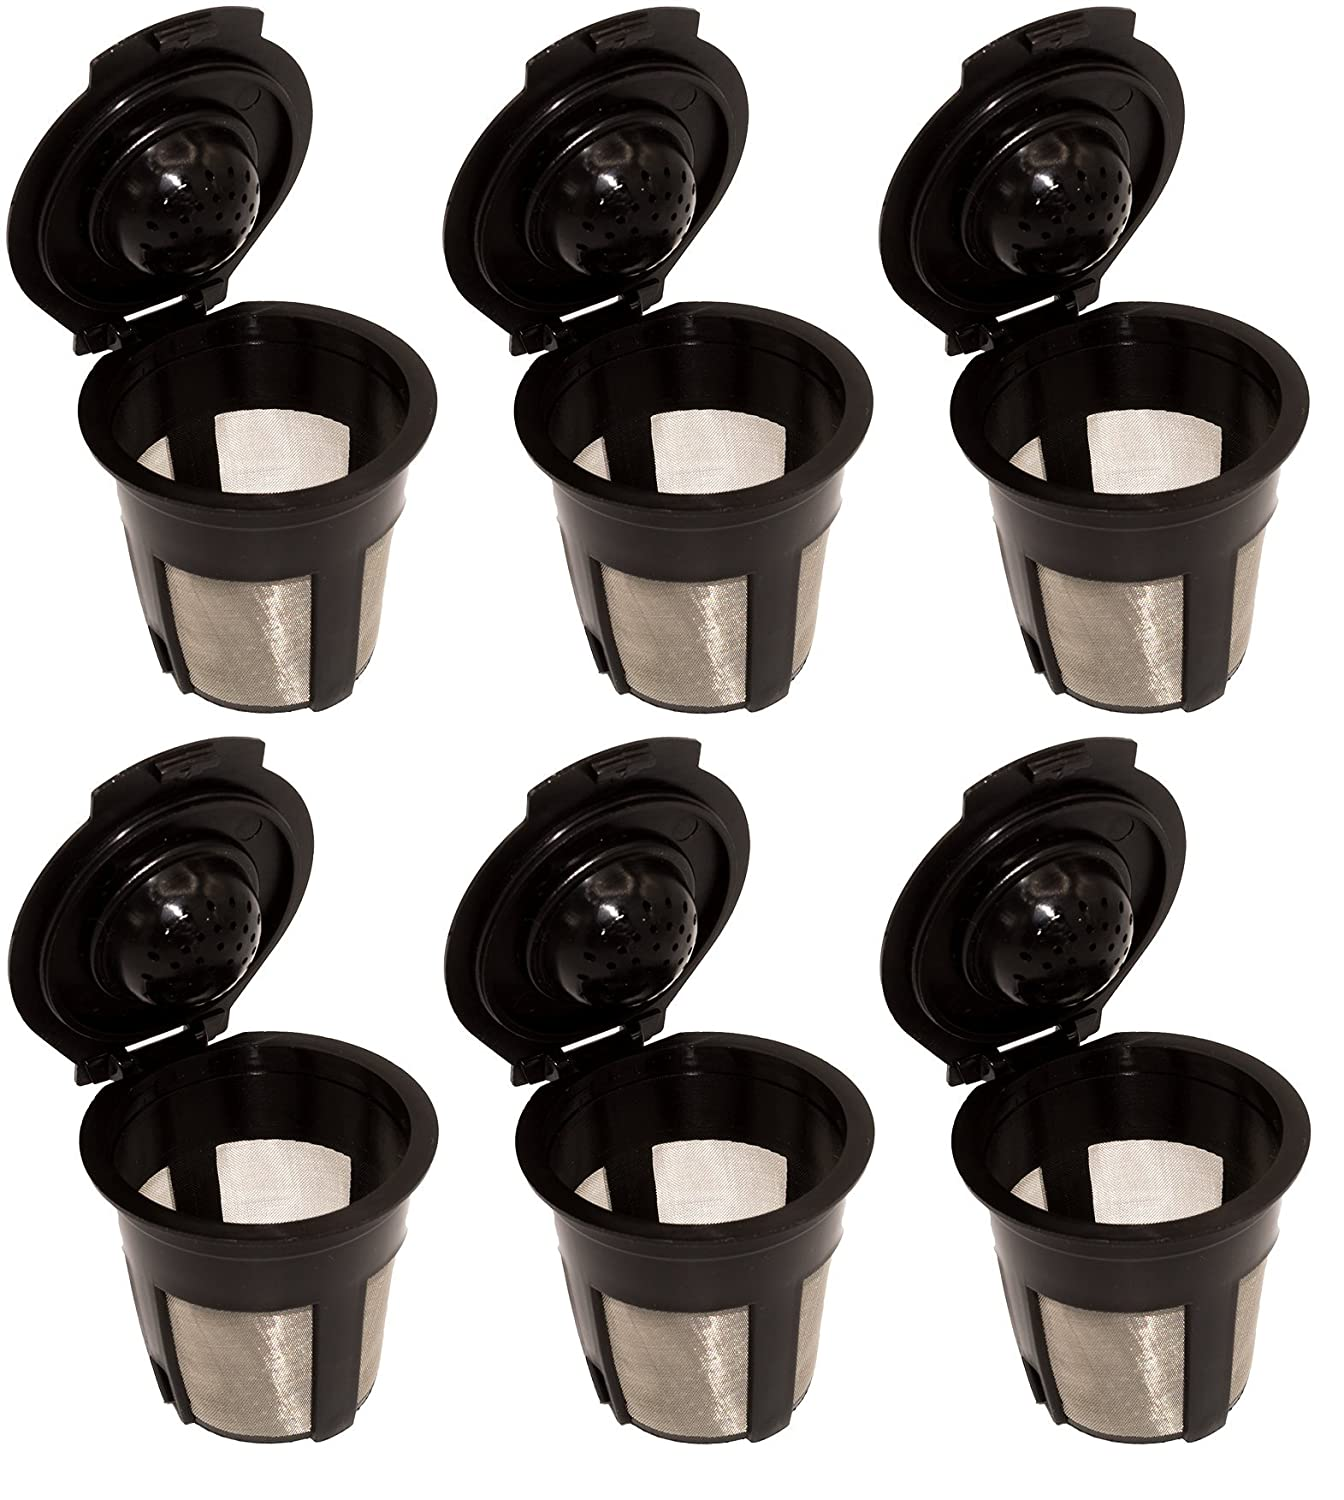 Blendin Single Reusable Refillable Coffee Filter Pod,Compatible with Keurig B40, B41, B44, B45, B50, B60, B65, B70, B75, B77, B79, K10, K40, K45, K50, K55, K60, K65, K70, K75, K77, K79 (6 Pack)